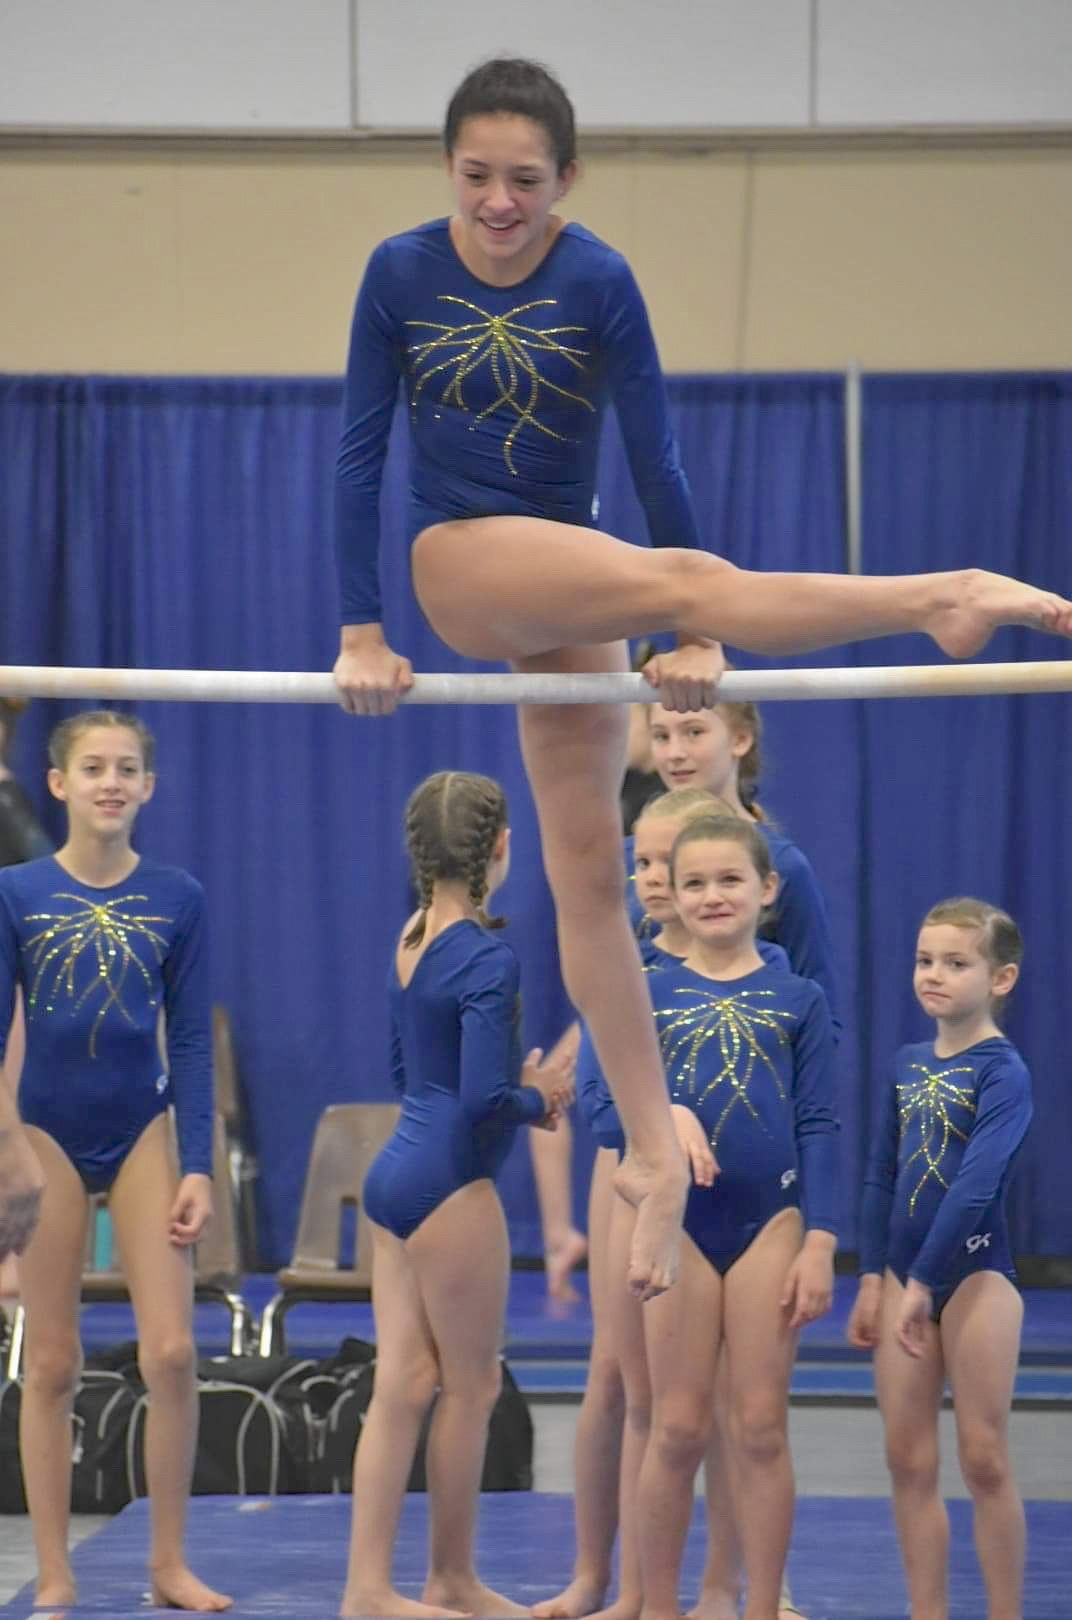 Gymnast Annie Rehnert on the bars